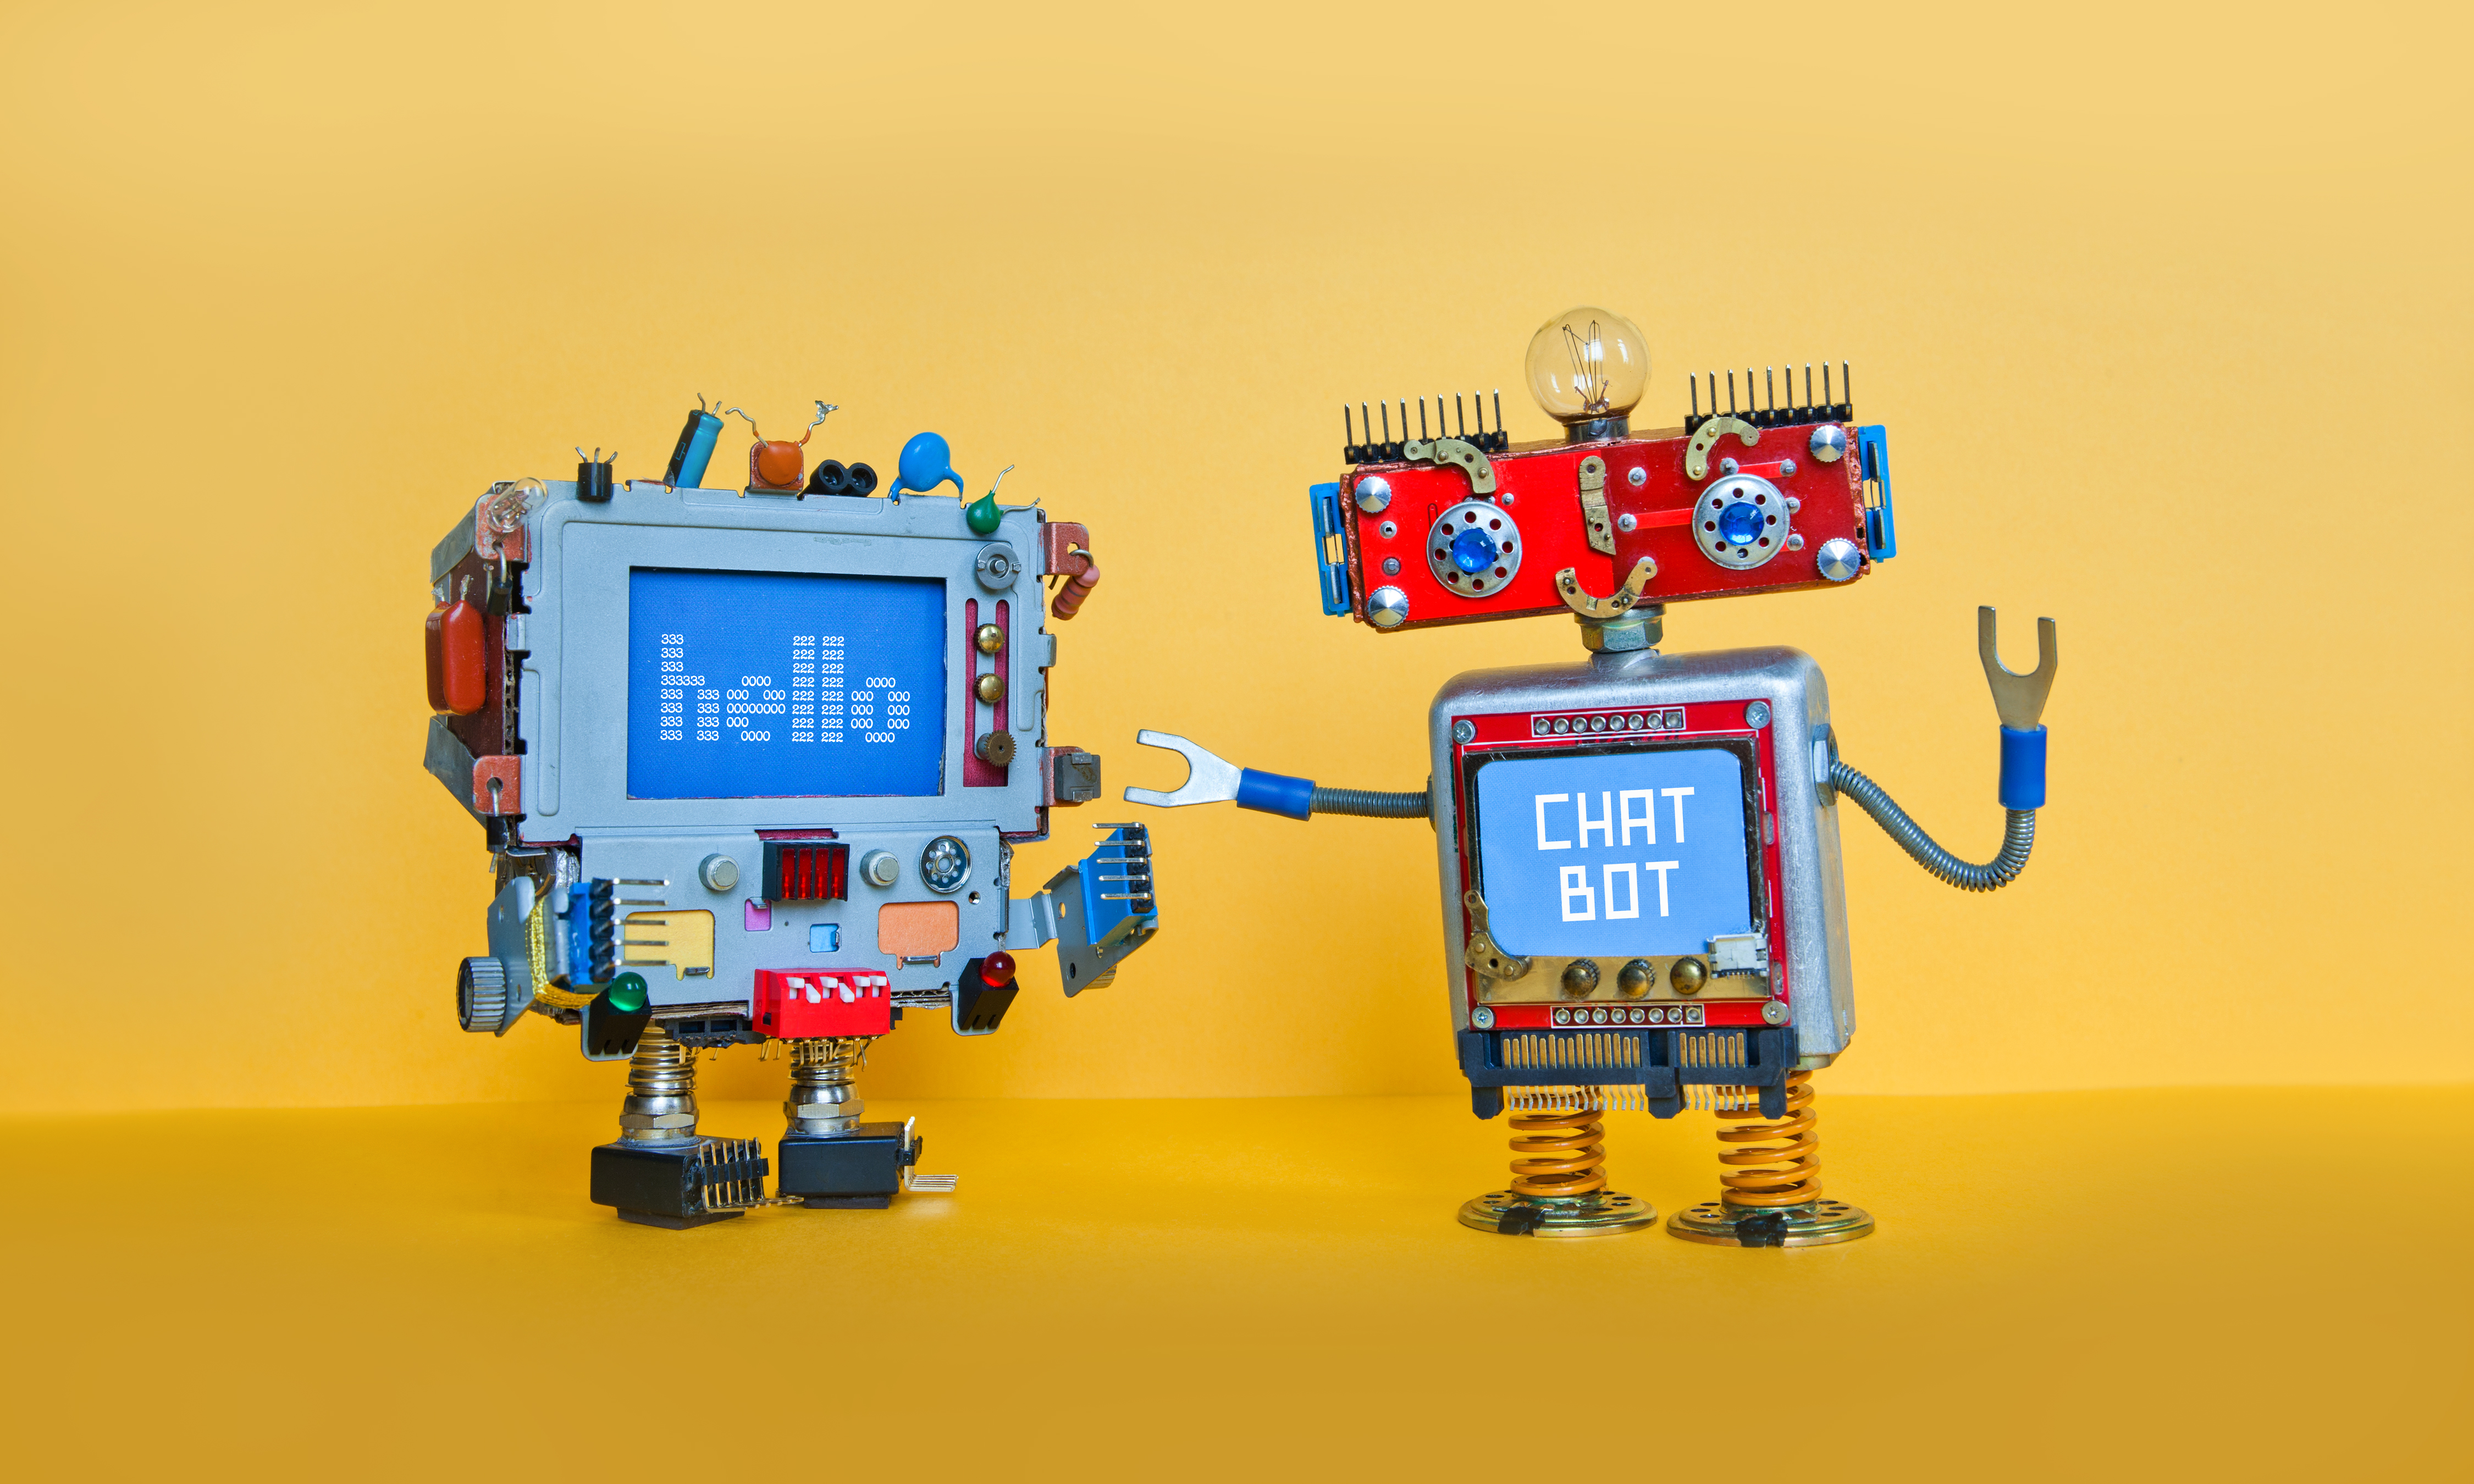 chat-bot-robot-welcomes-android-robotic-character--P8K9HG5